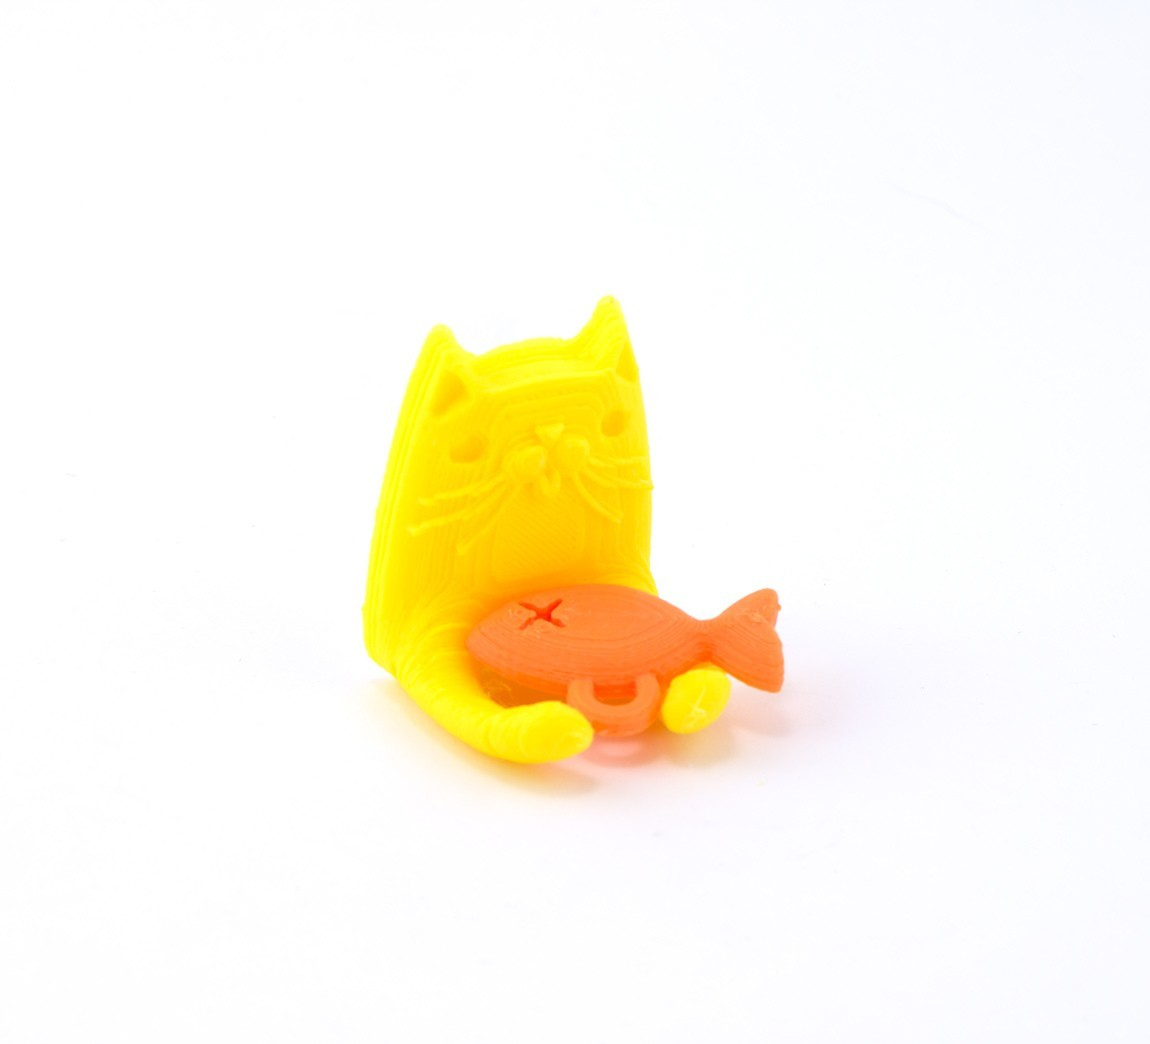 659737632d9c1469cdfca1fd7e4b7715_1449188244812_NMD00475-3.jpg Download free STL file Kitteh Key Holder • Model to 3D print, Hom3d